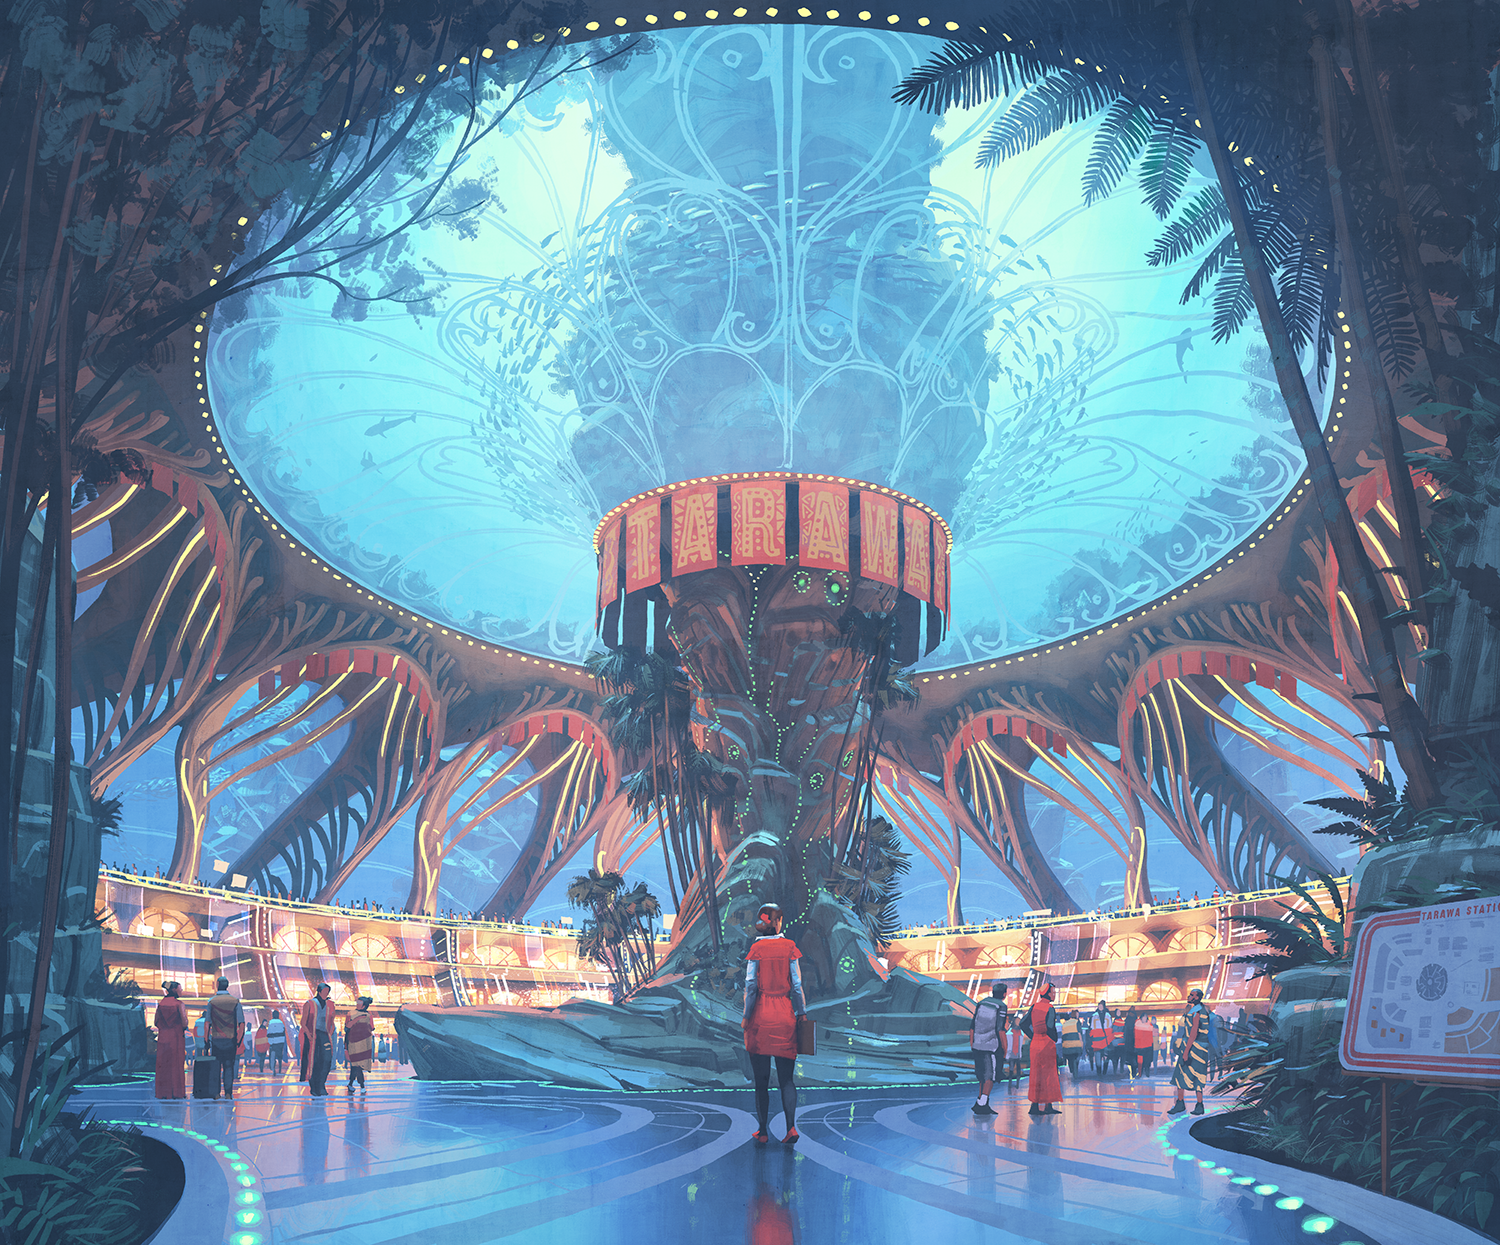 Rising waters: Tarawa Station serves An article about the Seacology The underwater Tarawa Station transit hub connects submarine residence domes and public spaces, serving the small island states that banded together as sea levels rose. Courtesy of Simon Stålenhag.